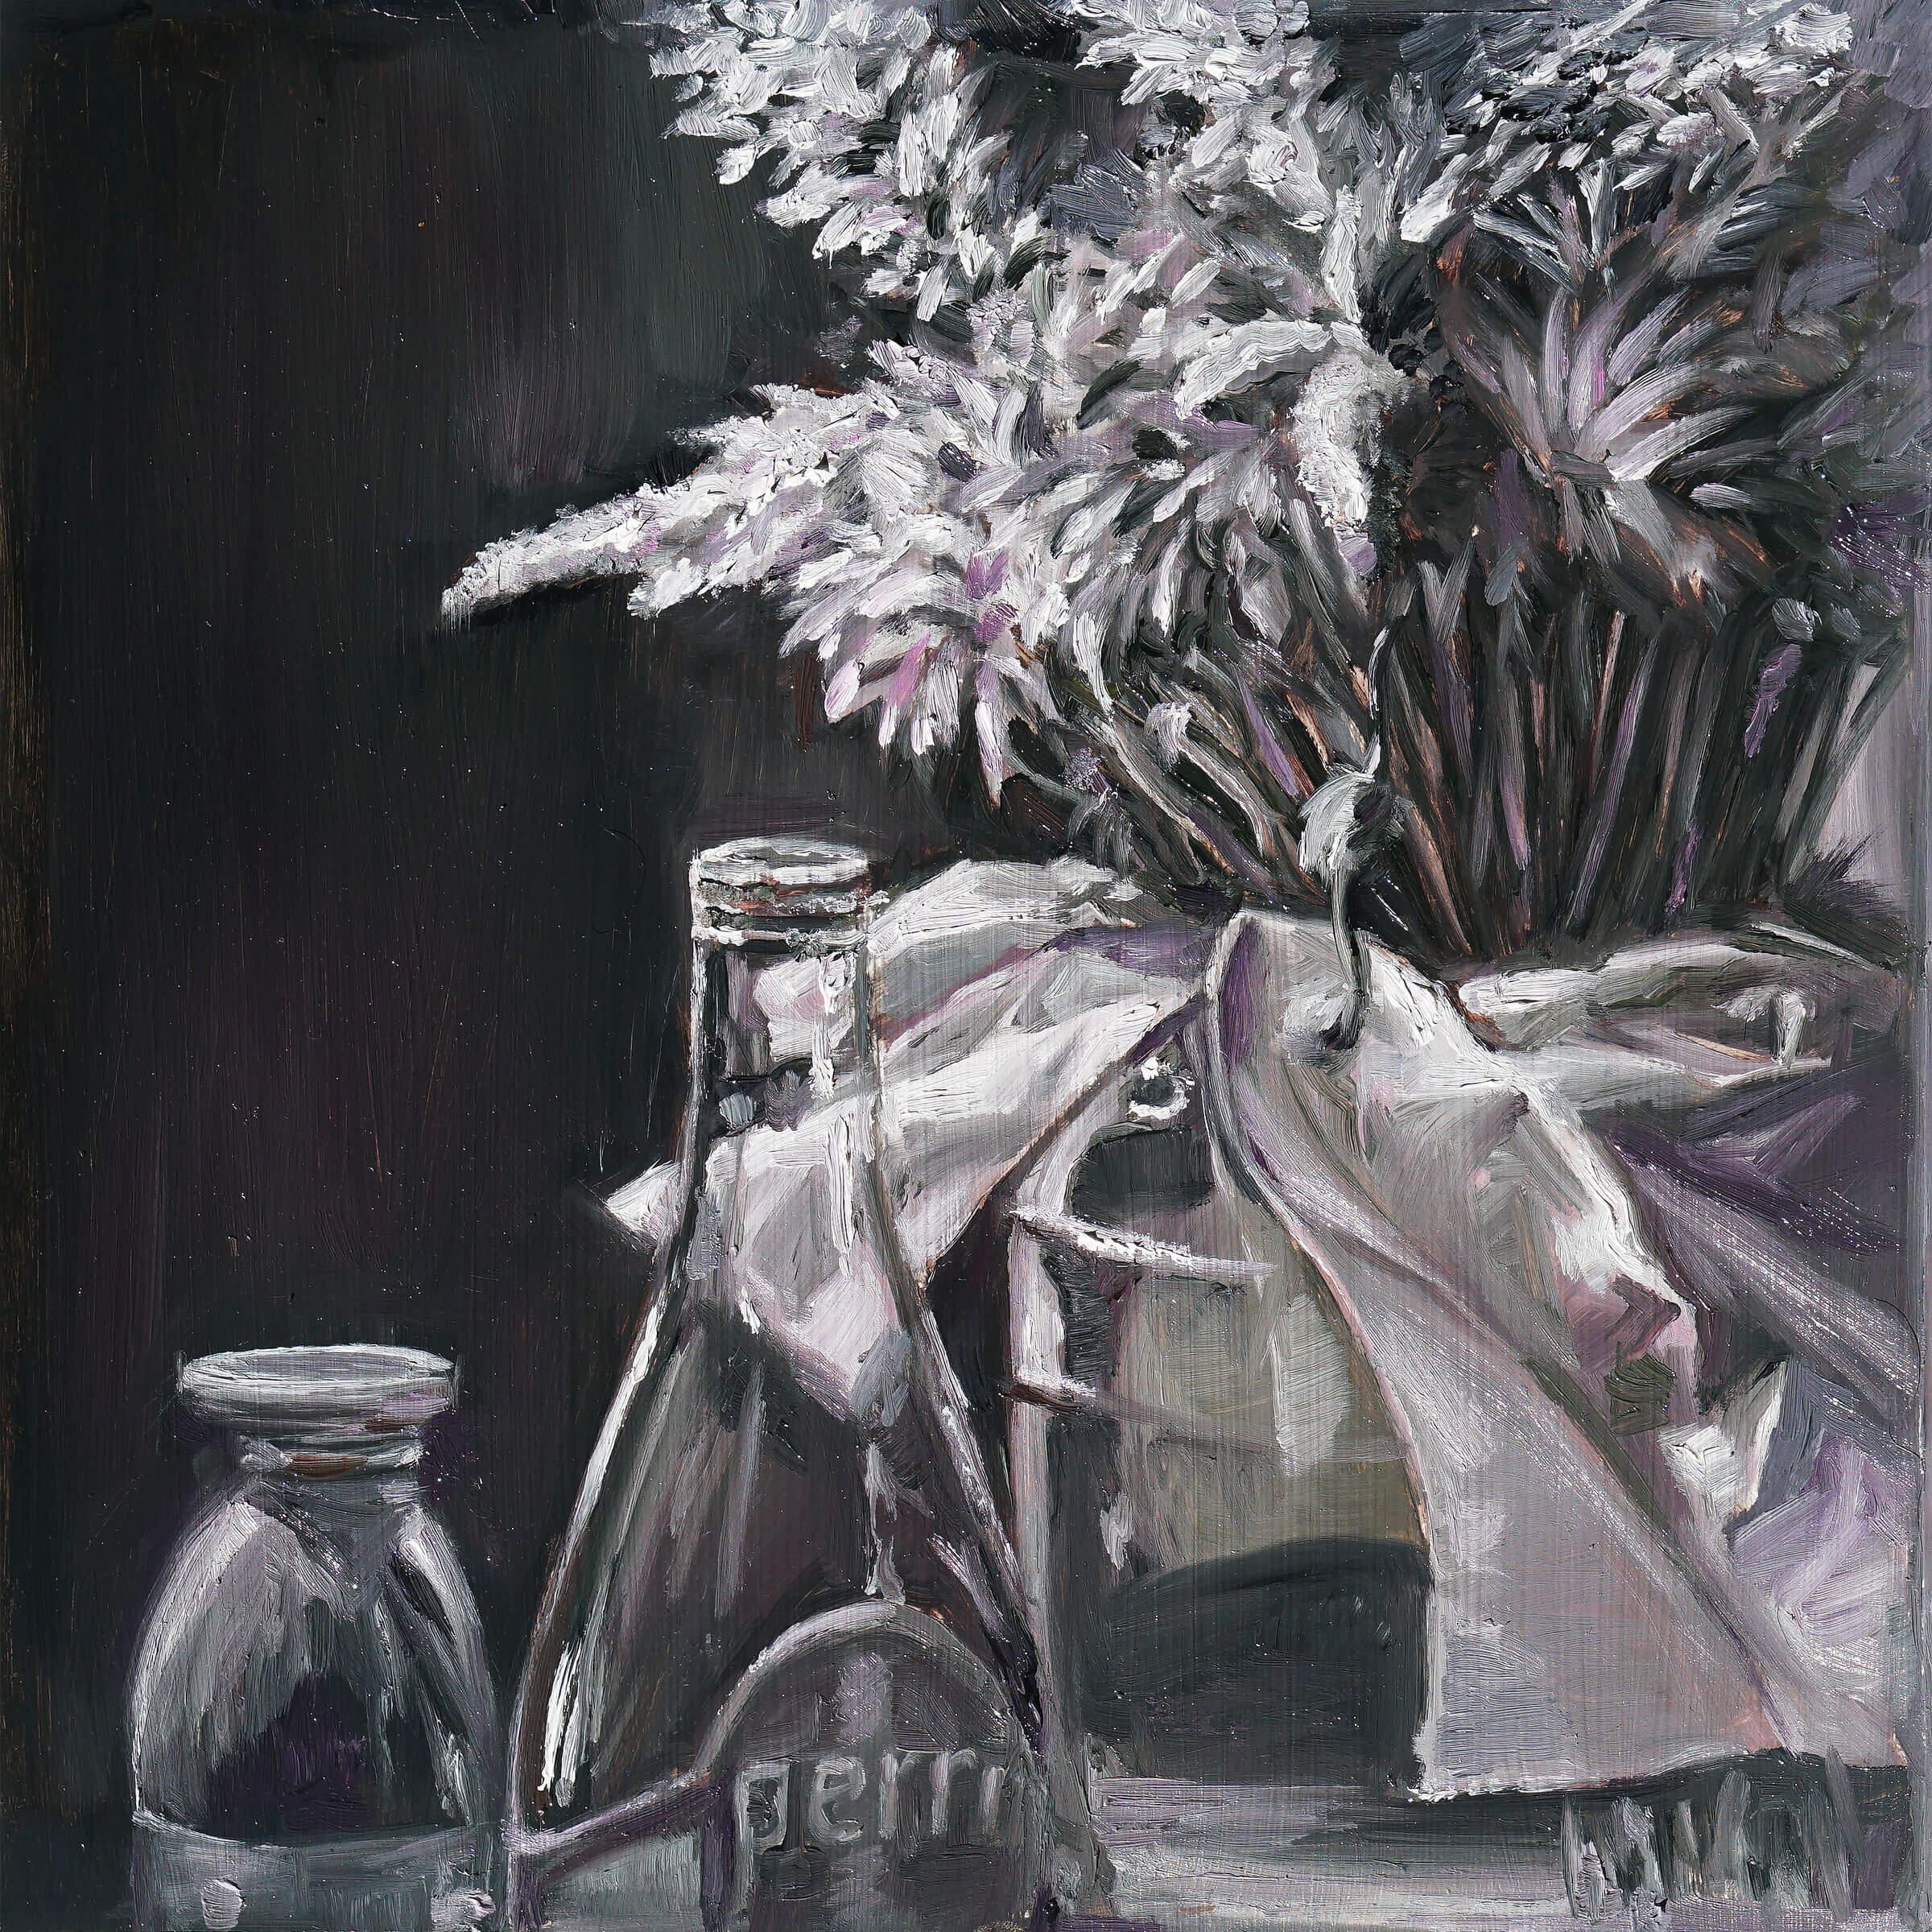 Still-life with a Perrier bottle and flowers in a glass jug